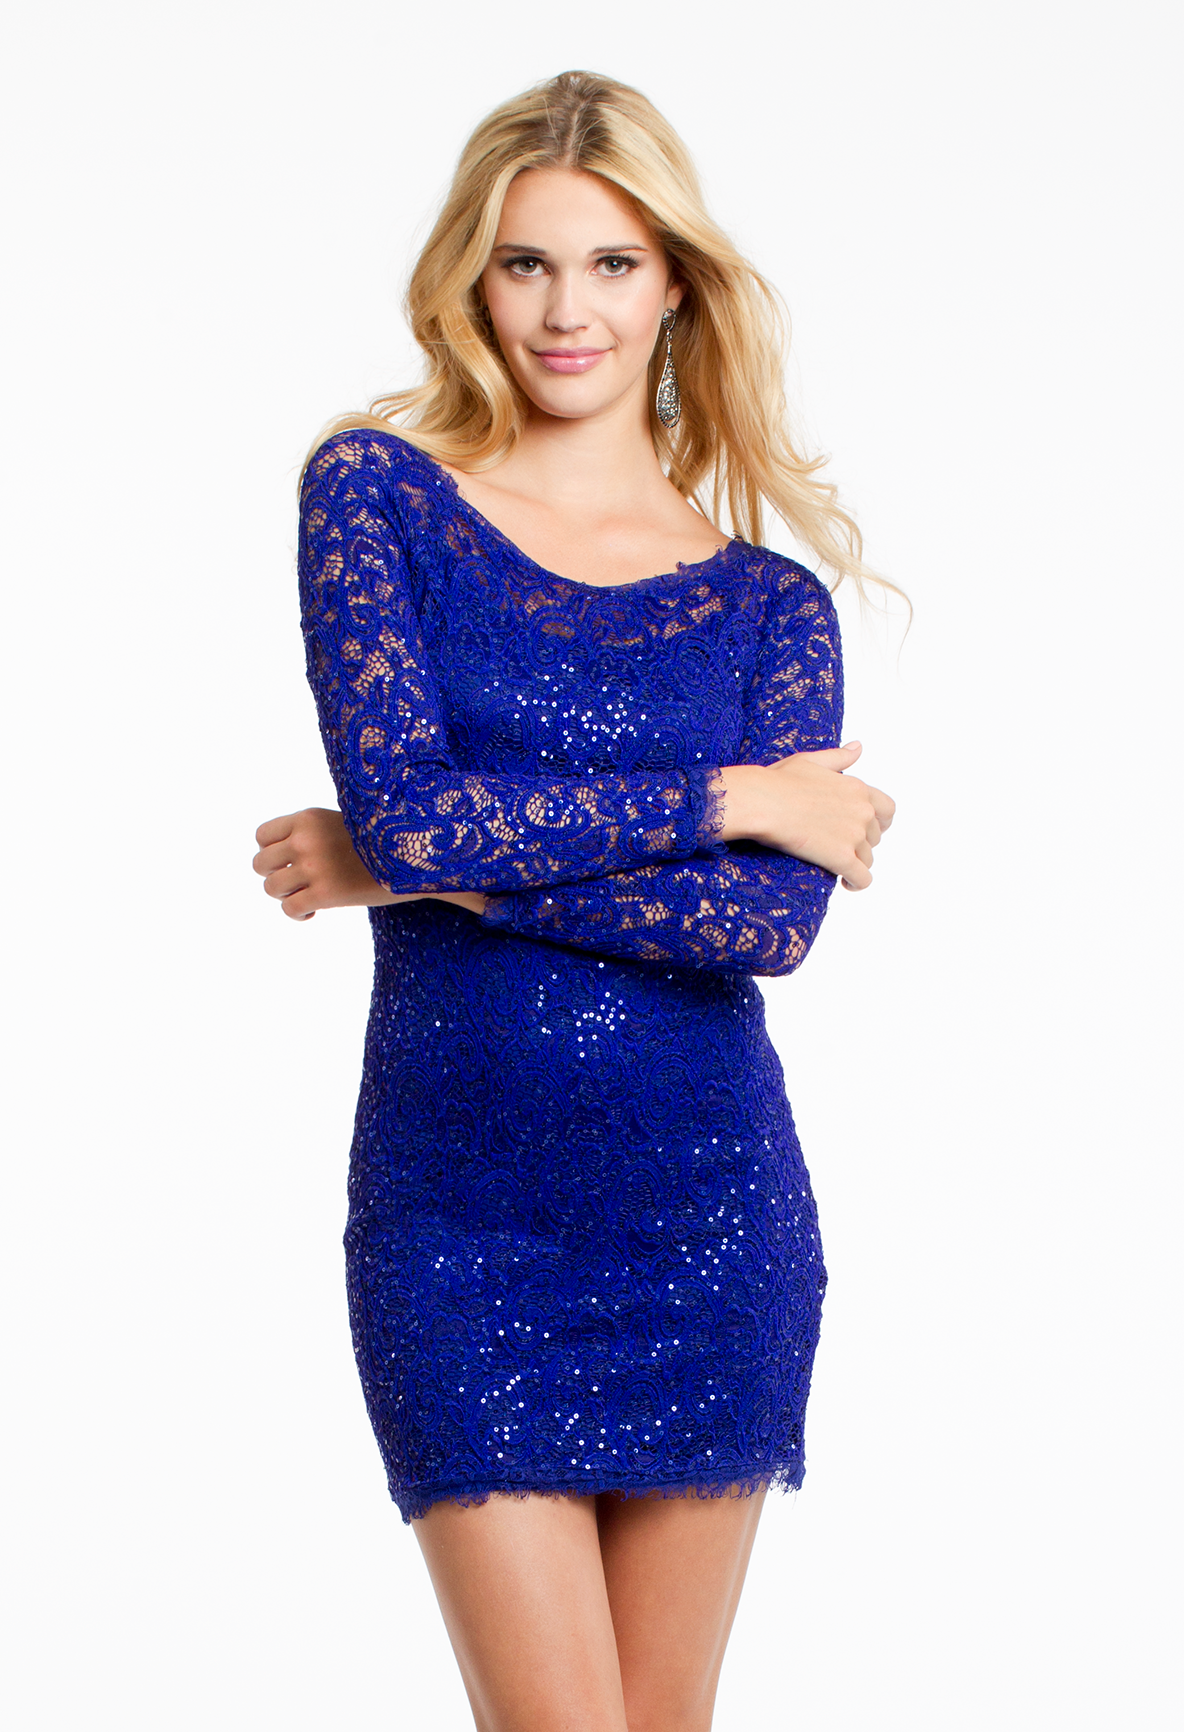 Long Sleeve Sequin Lace Dress #camillelavie | NEW ARRIVALS ...